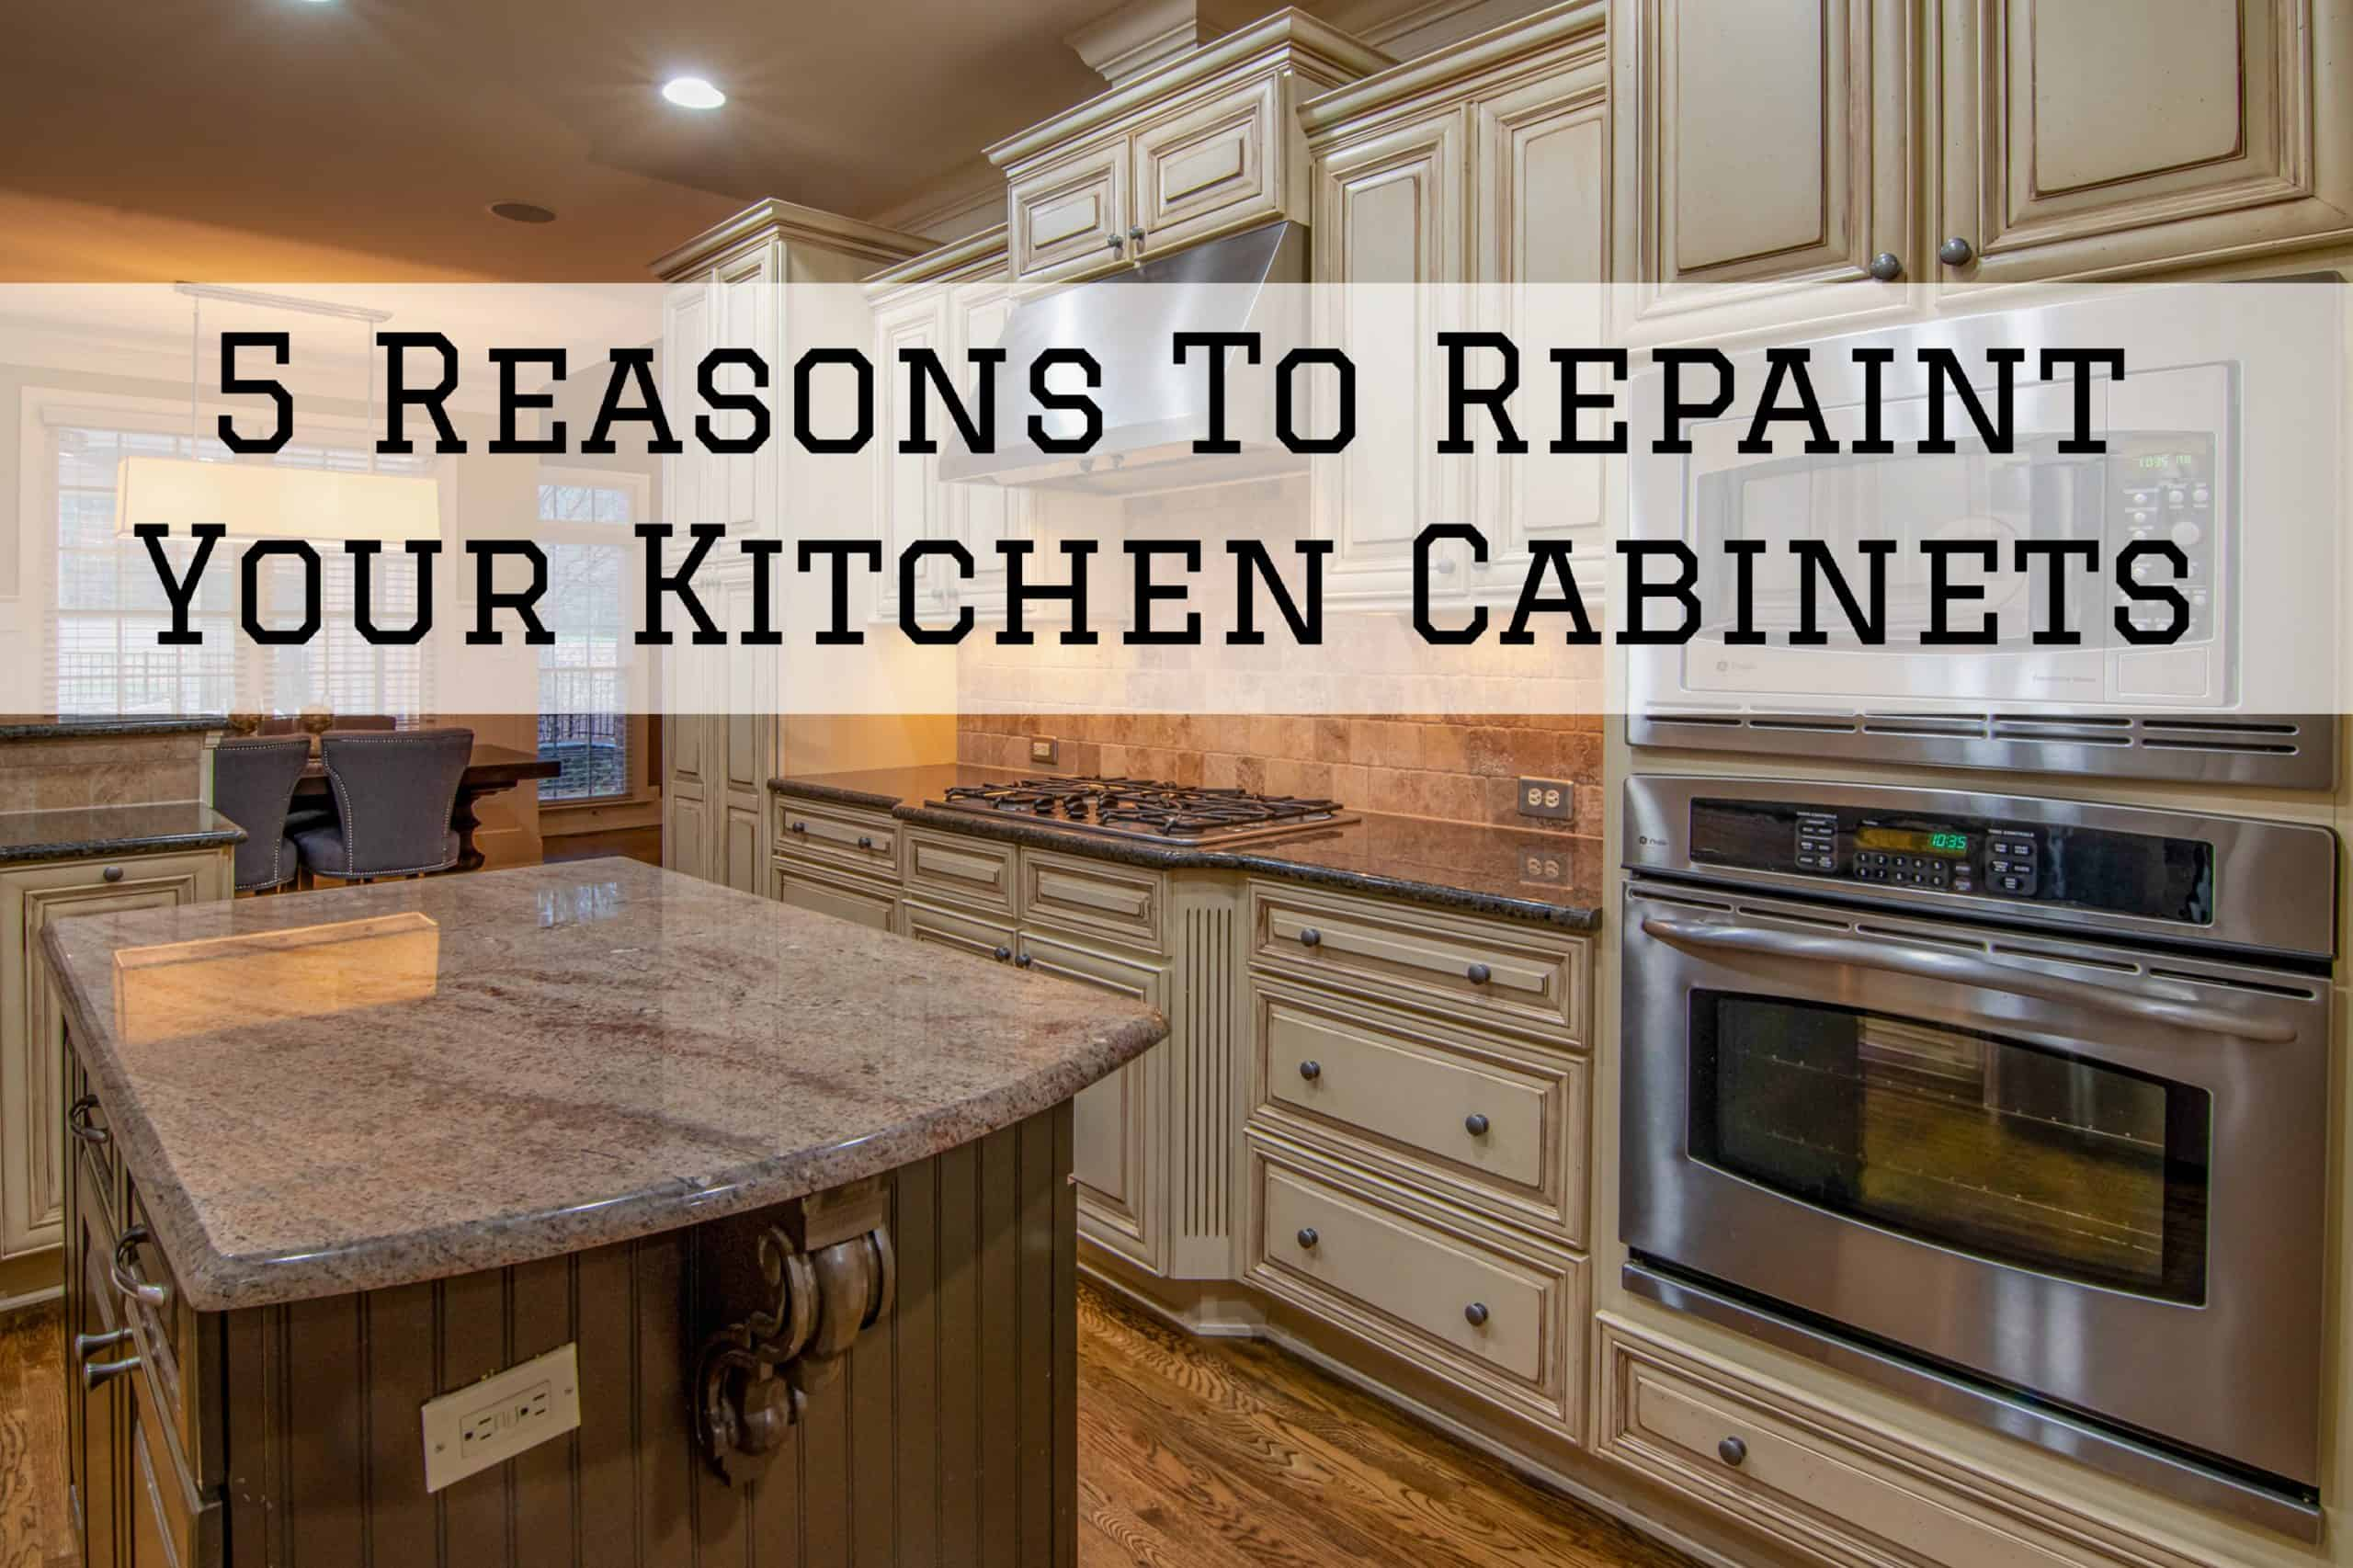 2020-08-24 Brush and Roll Omaha NE Reasons Kitchen Cabinets Repaint